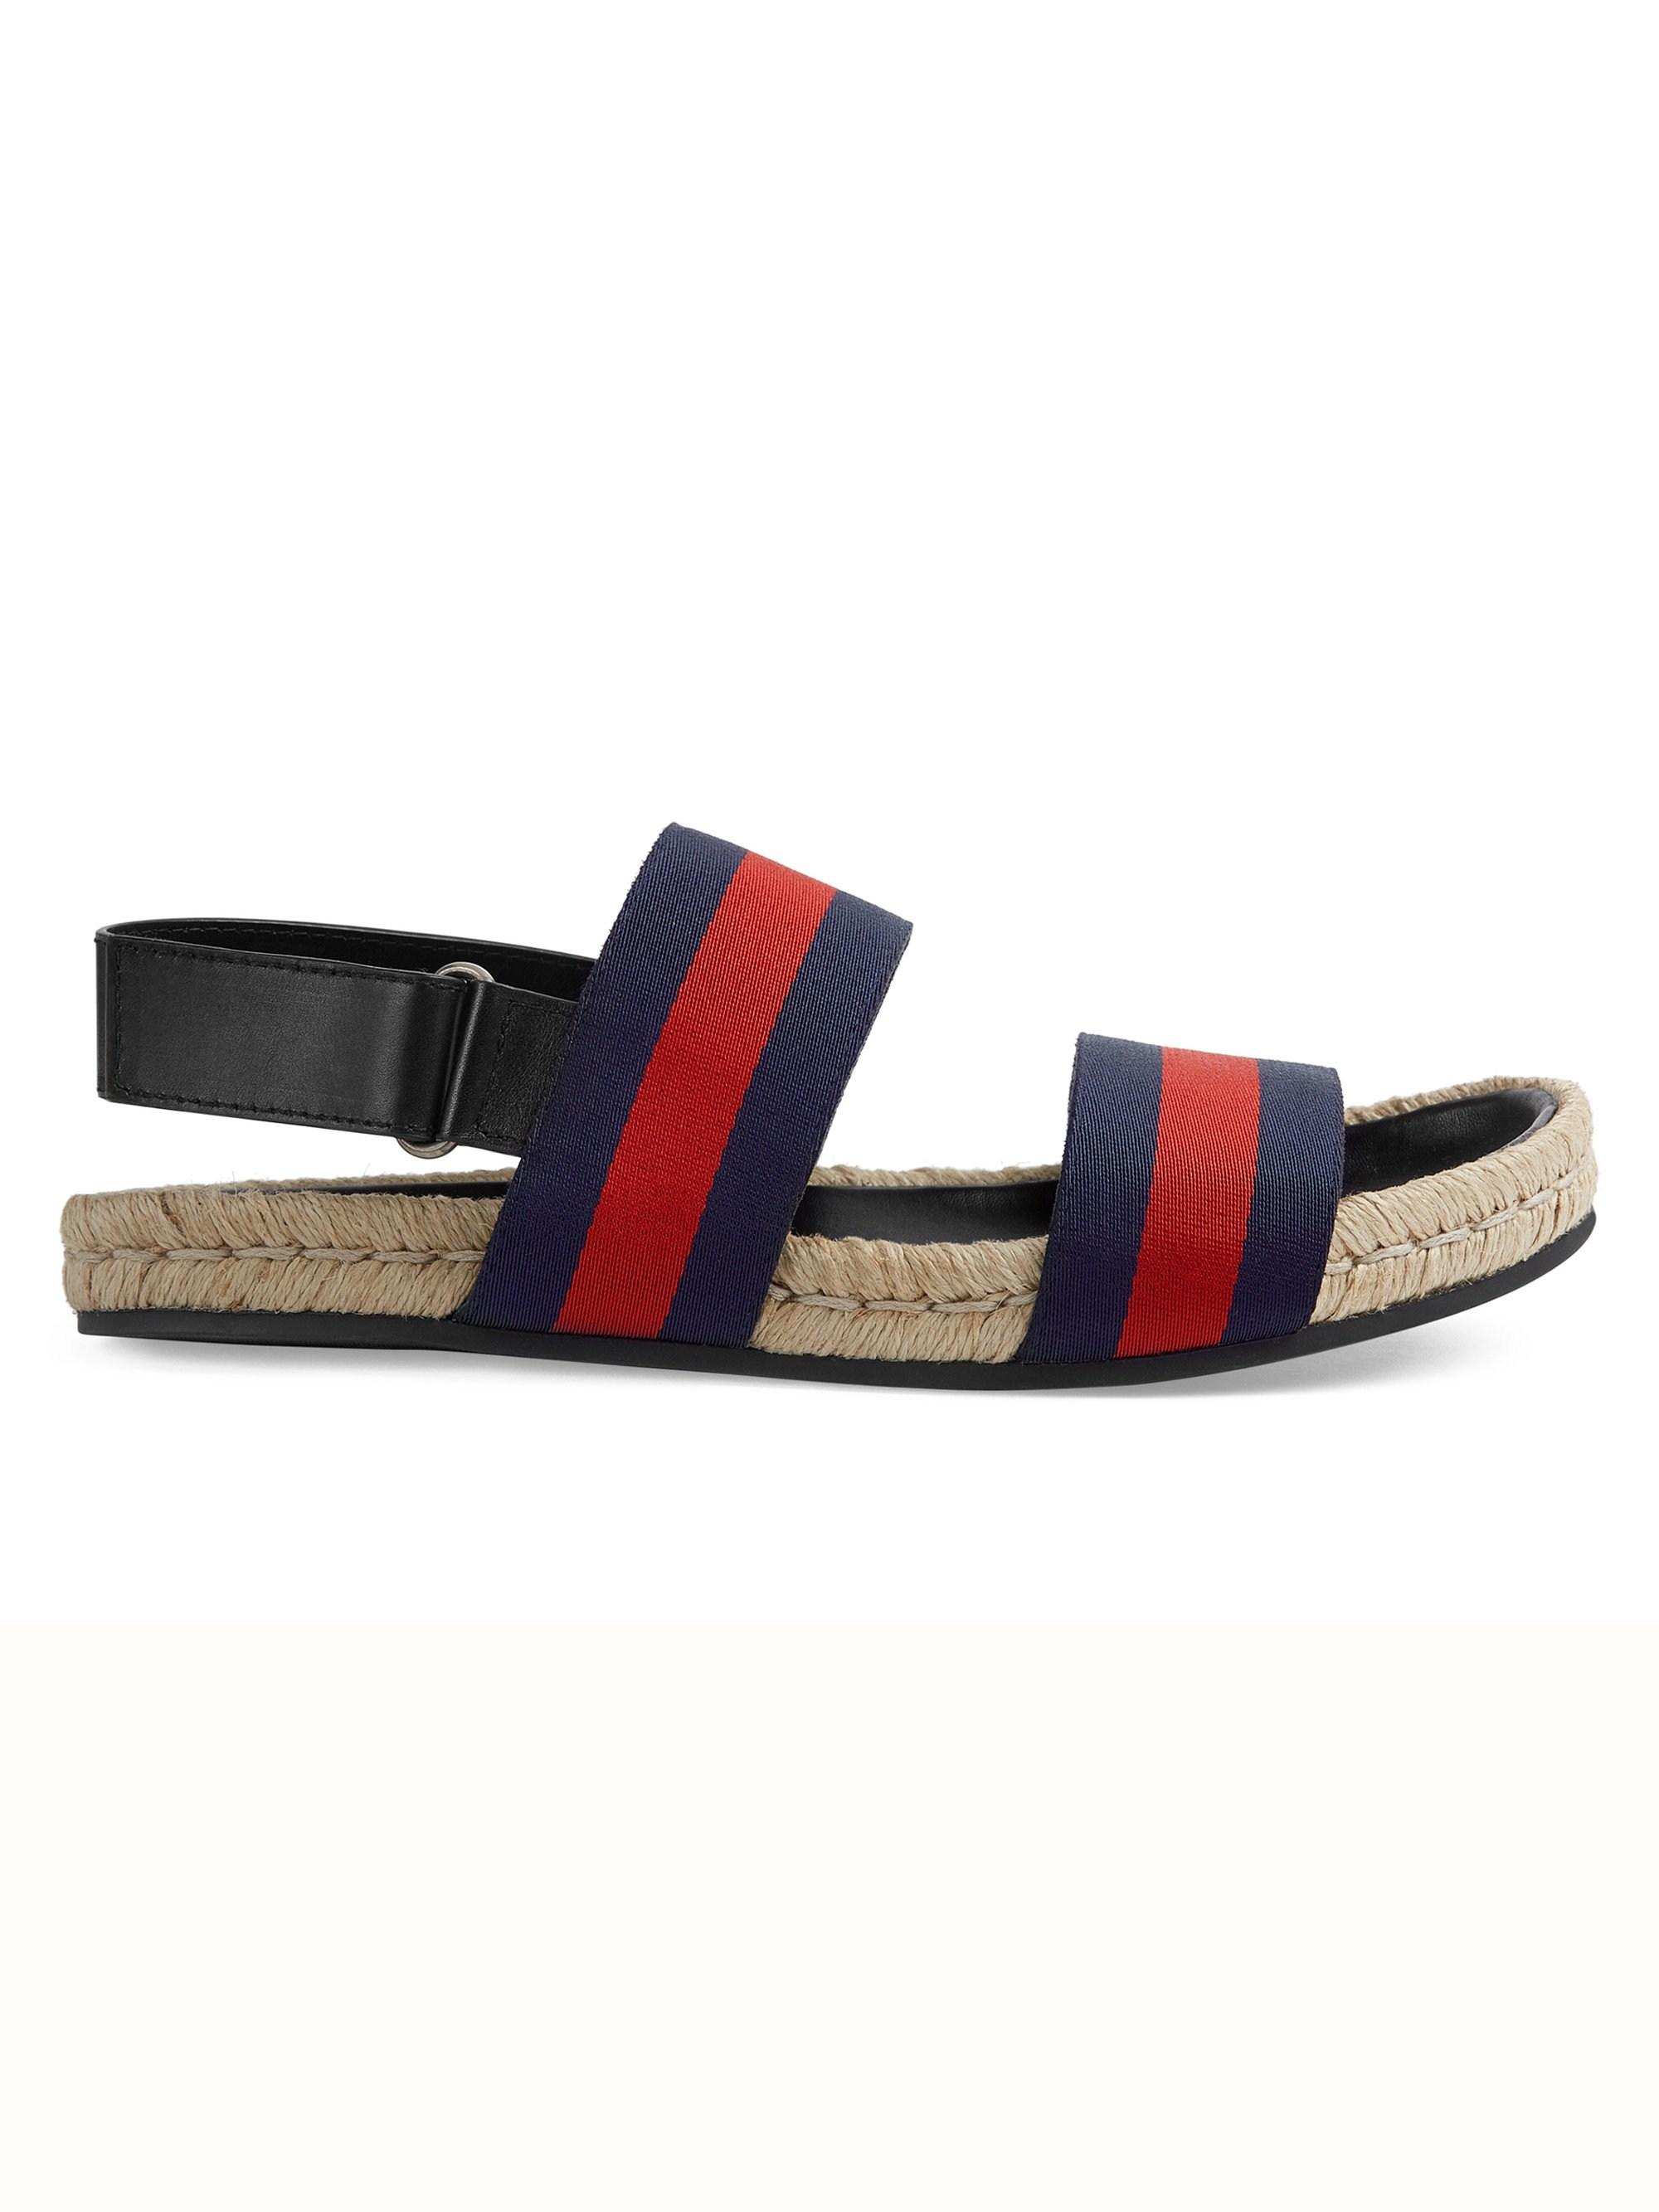 4ef2a8910 Gucci Web Strap Sandals in Blue for Men - Lyst